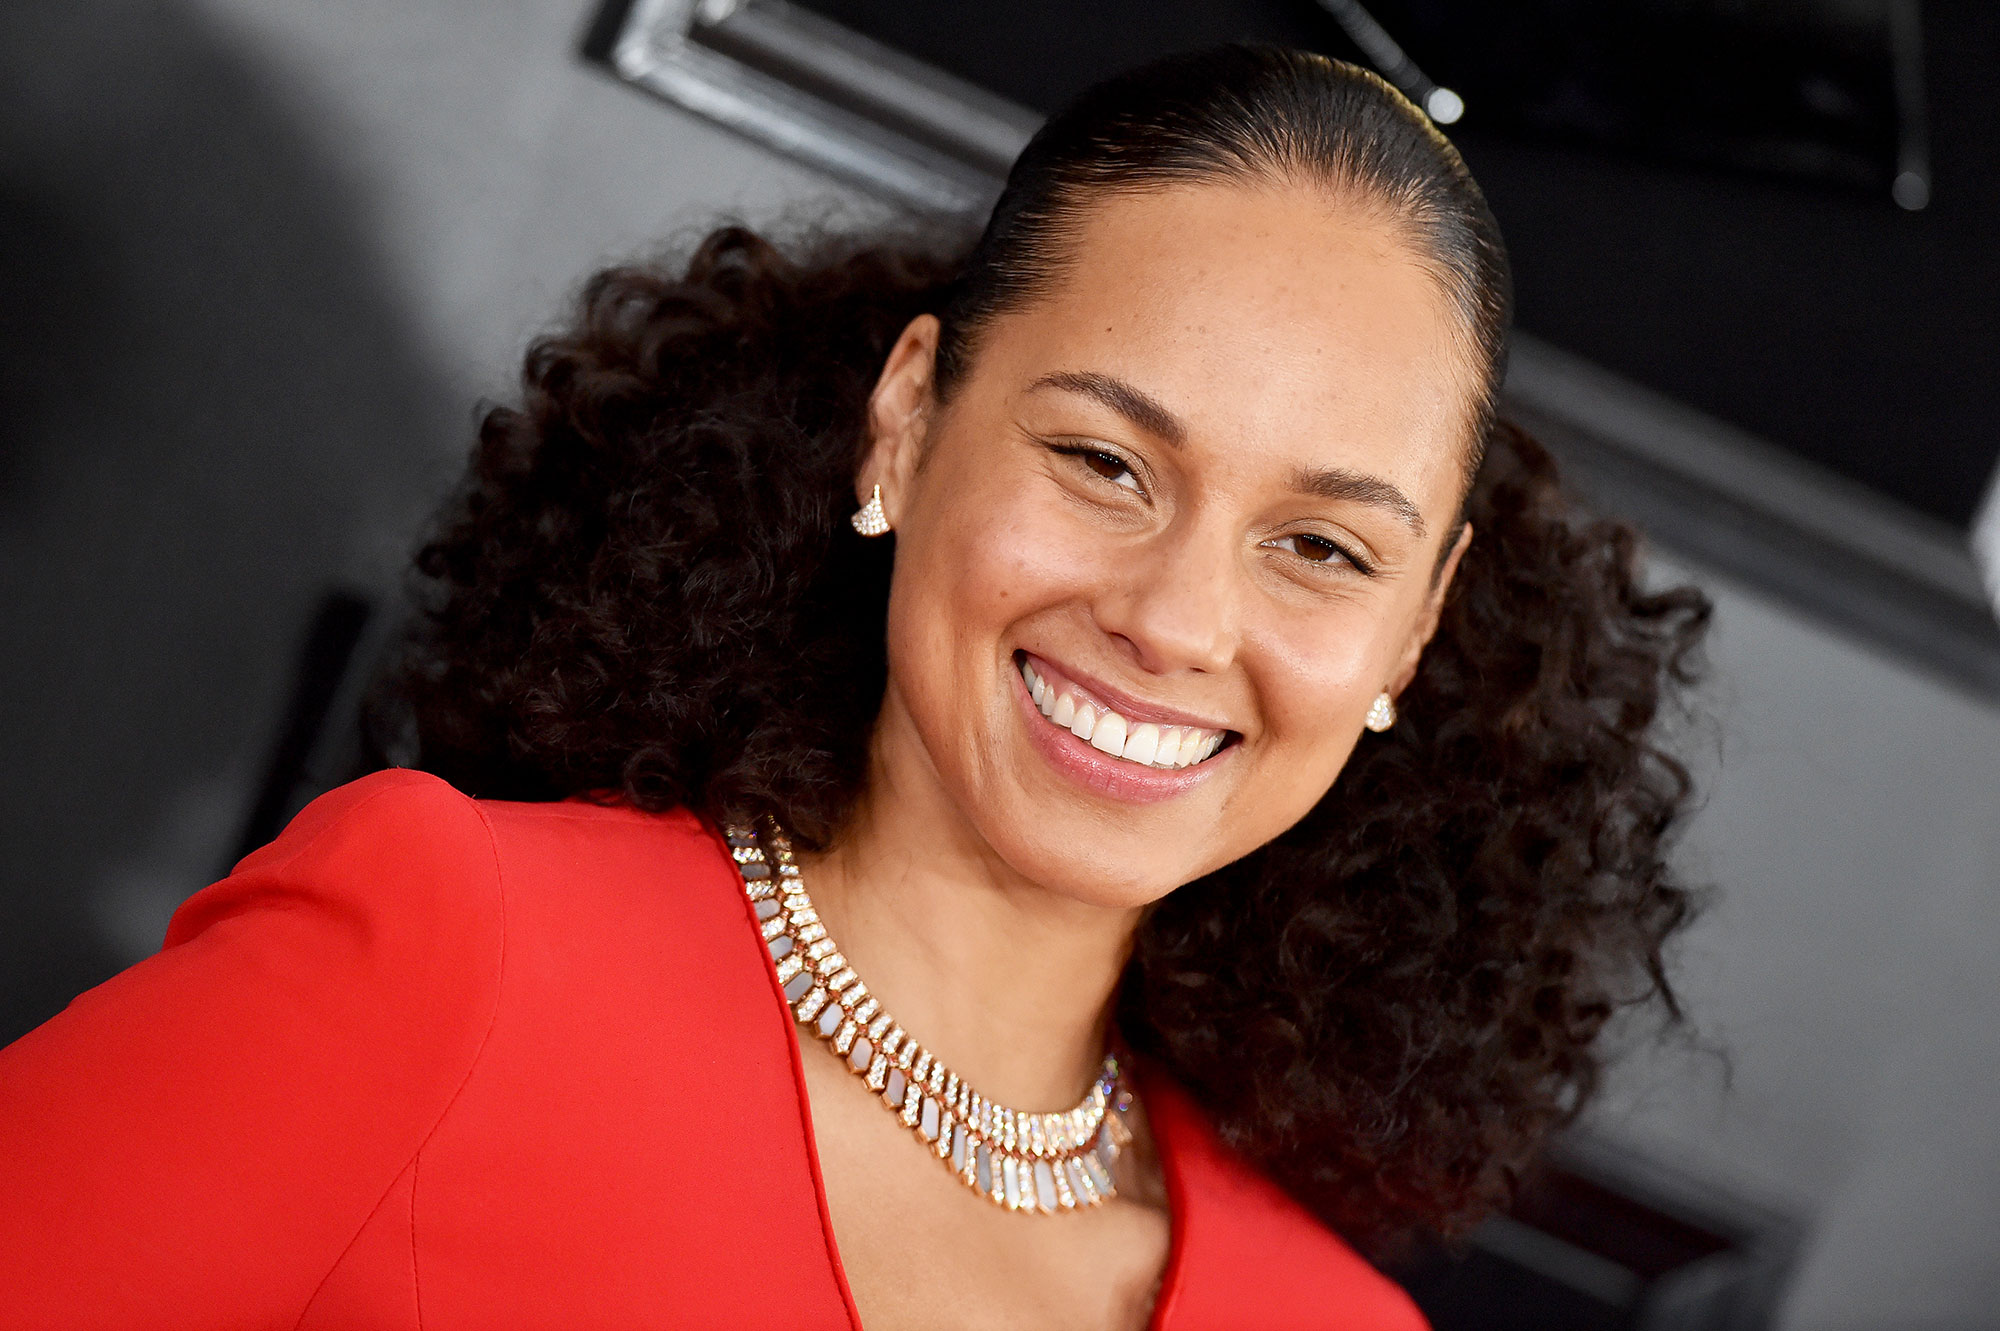 grammys 2019 Alicia Keys - Alicia Keys' glowing skin The host made five fabulous wardrobe changes, complete with hairstyle swaps but one thing remained constantly gorgeous throughout the show: Keys, known for her no makeup movement, showed off glowing skin, her freckles and a seemingly effortless no-makeup makeup look. Her pro, Dotti, simply blended a touch of Burt's Bees Complete Nourishment Facial Oil with a drop each of the brand's Goodness Glows Full Coverage Liquid Makeup in Walnut and Deep Maple to impart a golden natural look.